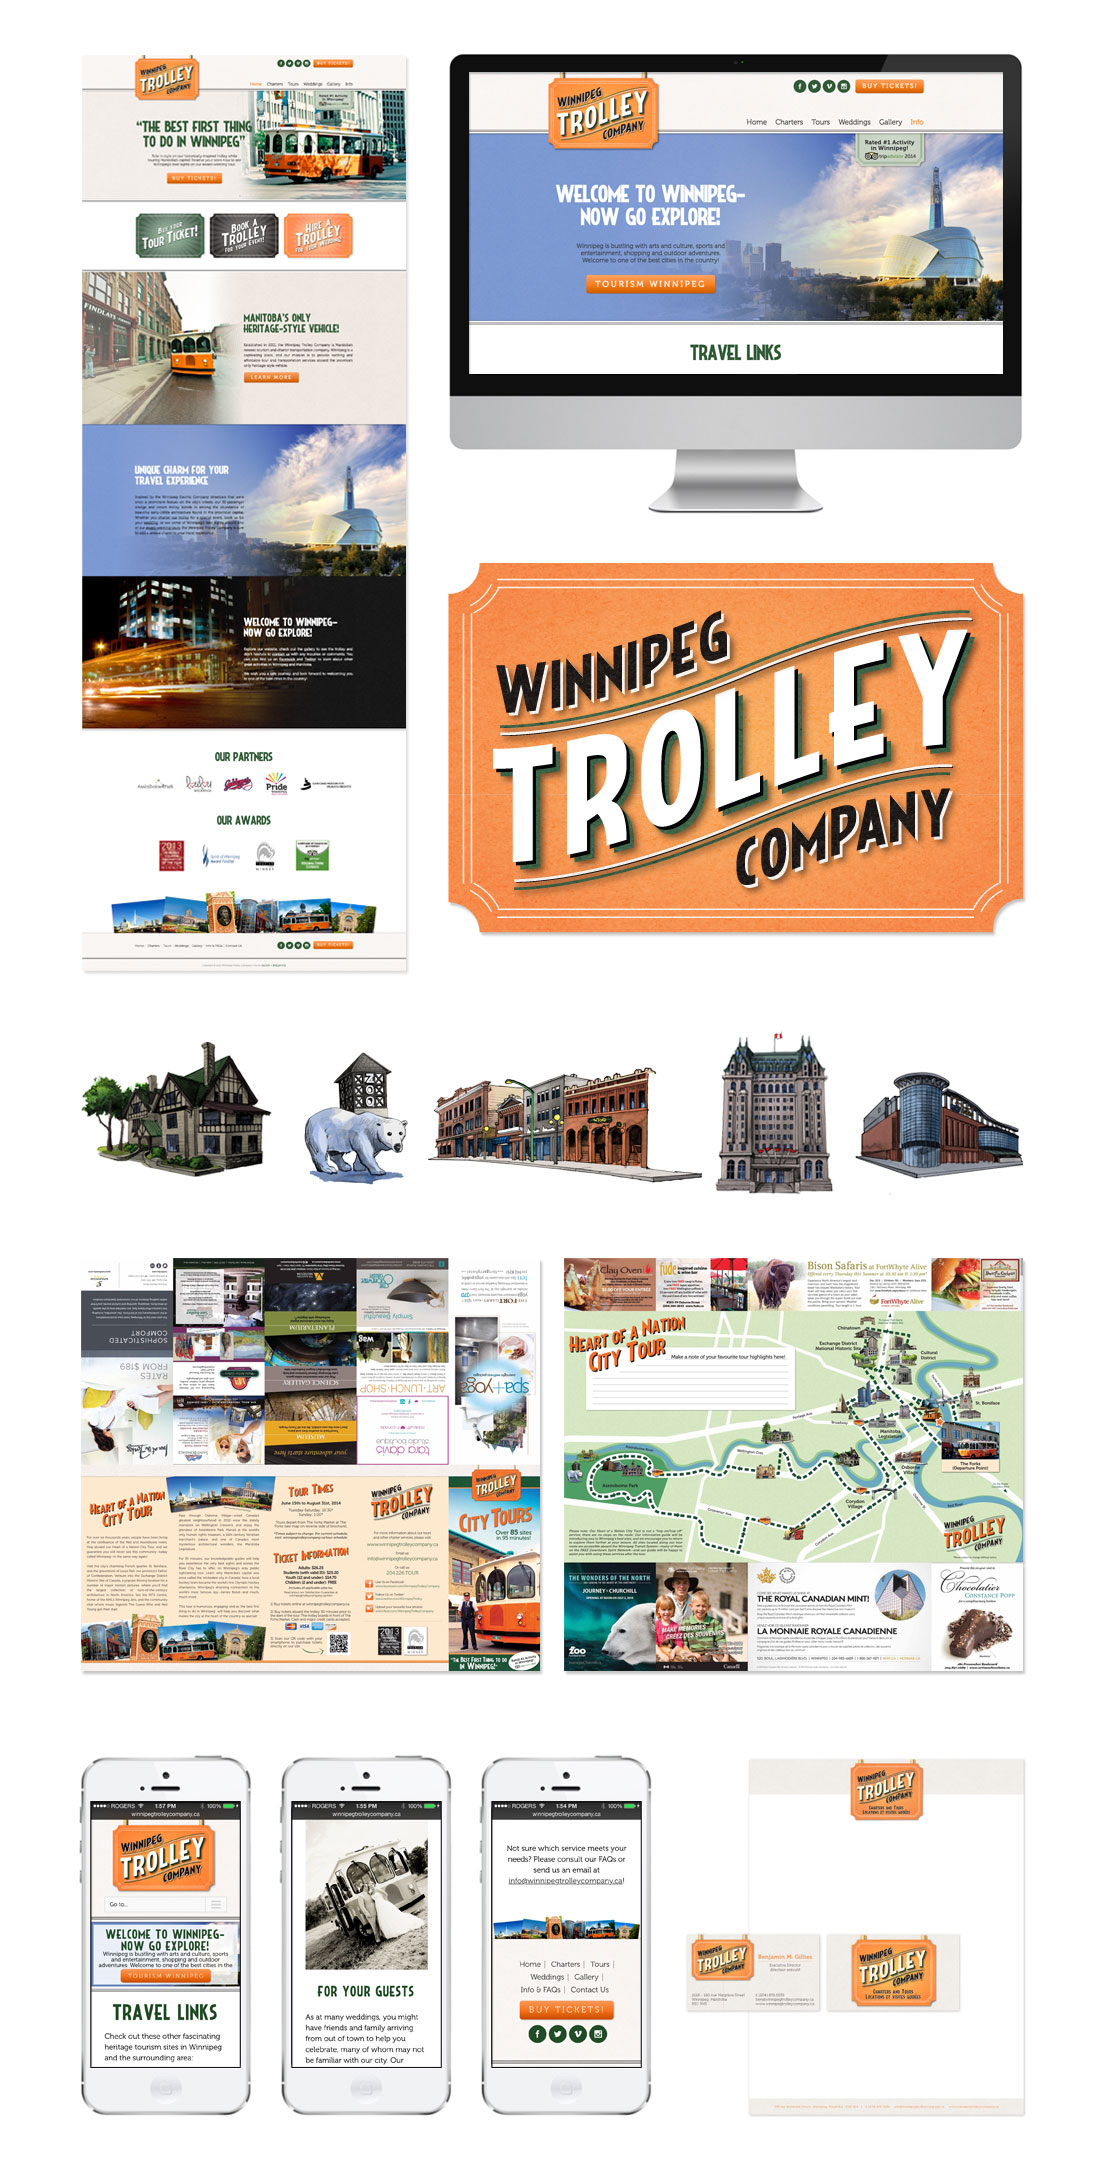 Winnipeg-Trolley-Comany-Website-Design-Winnipeg-Board